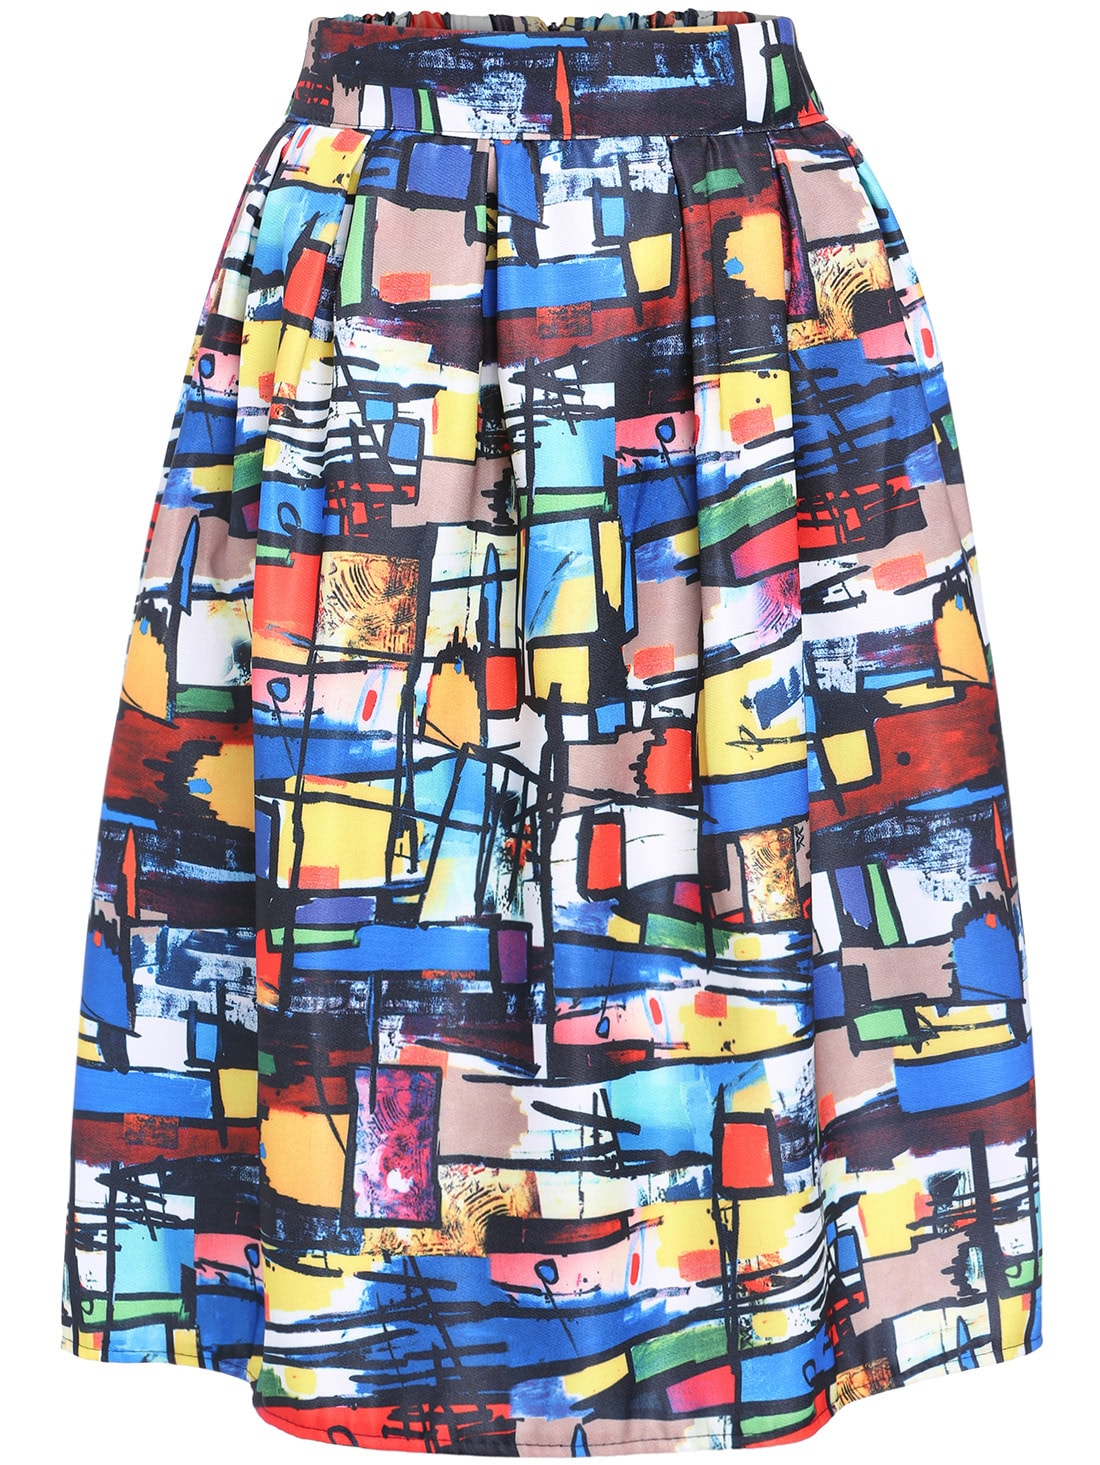 Multicolor Graffiti Print Midi Skirt -SheIn(Sheinside)